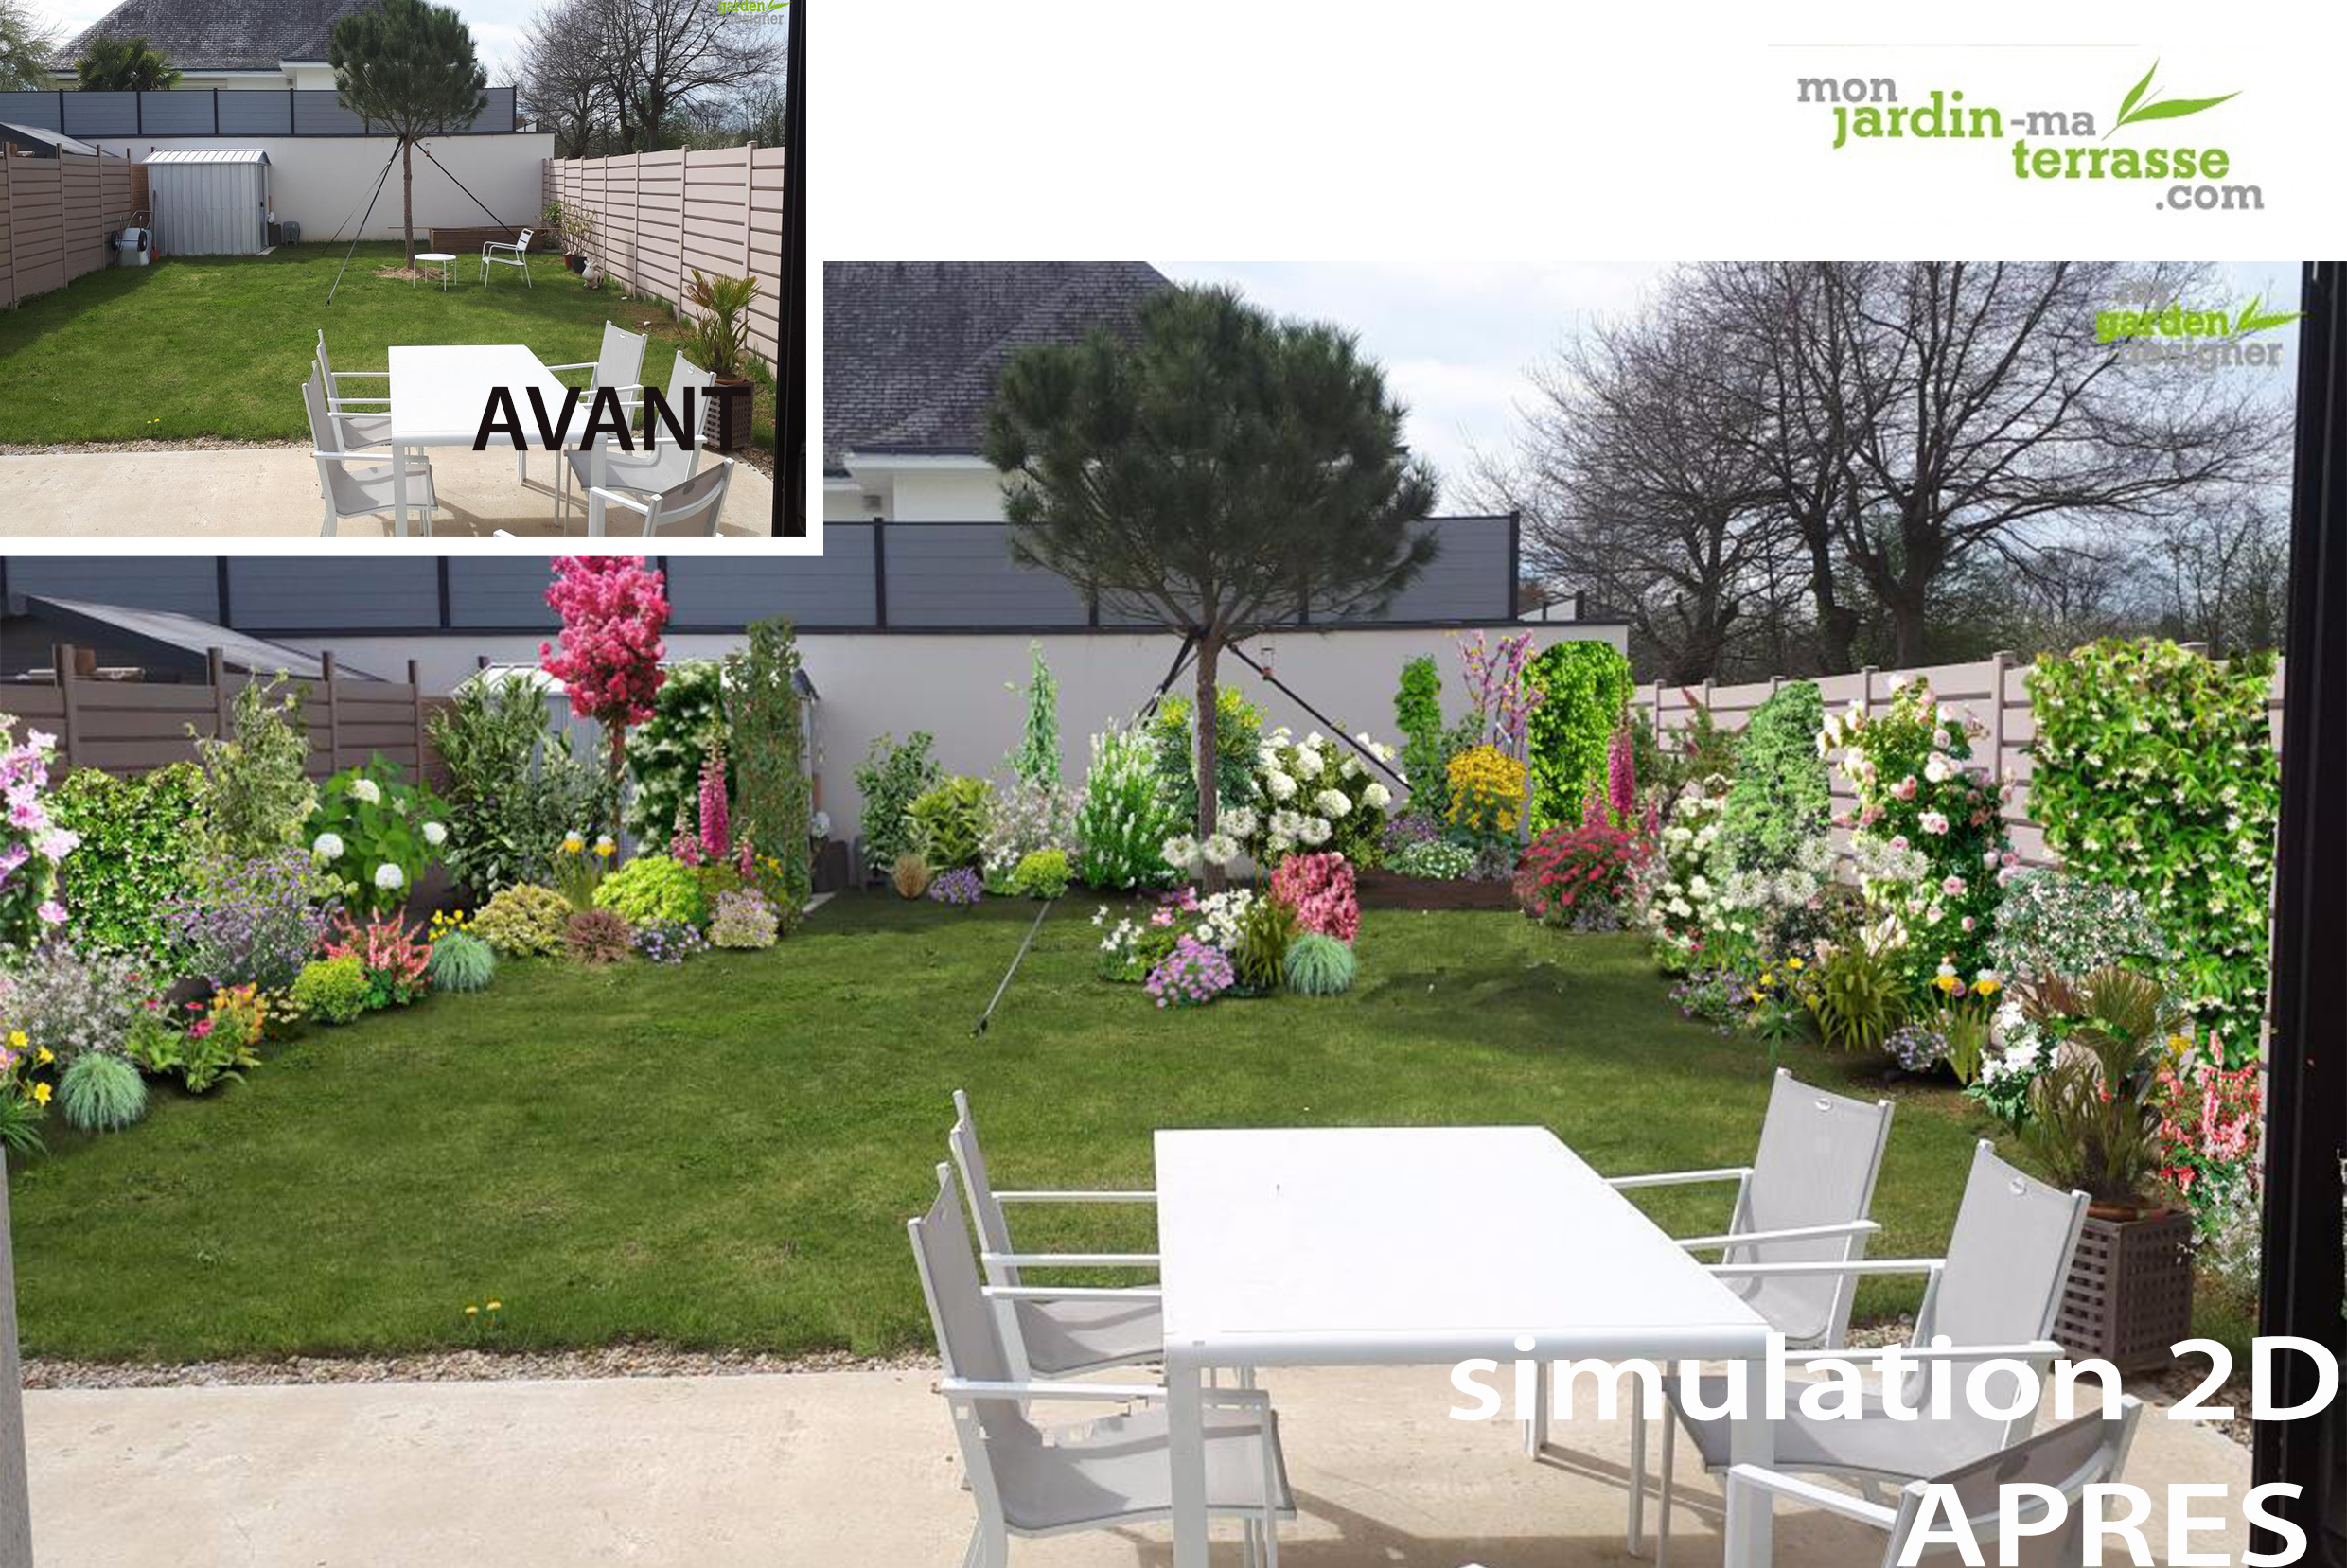 Comment am nager un petit jardin rectangulaire monjardin for Exemple amenagement jardin exterieur